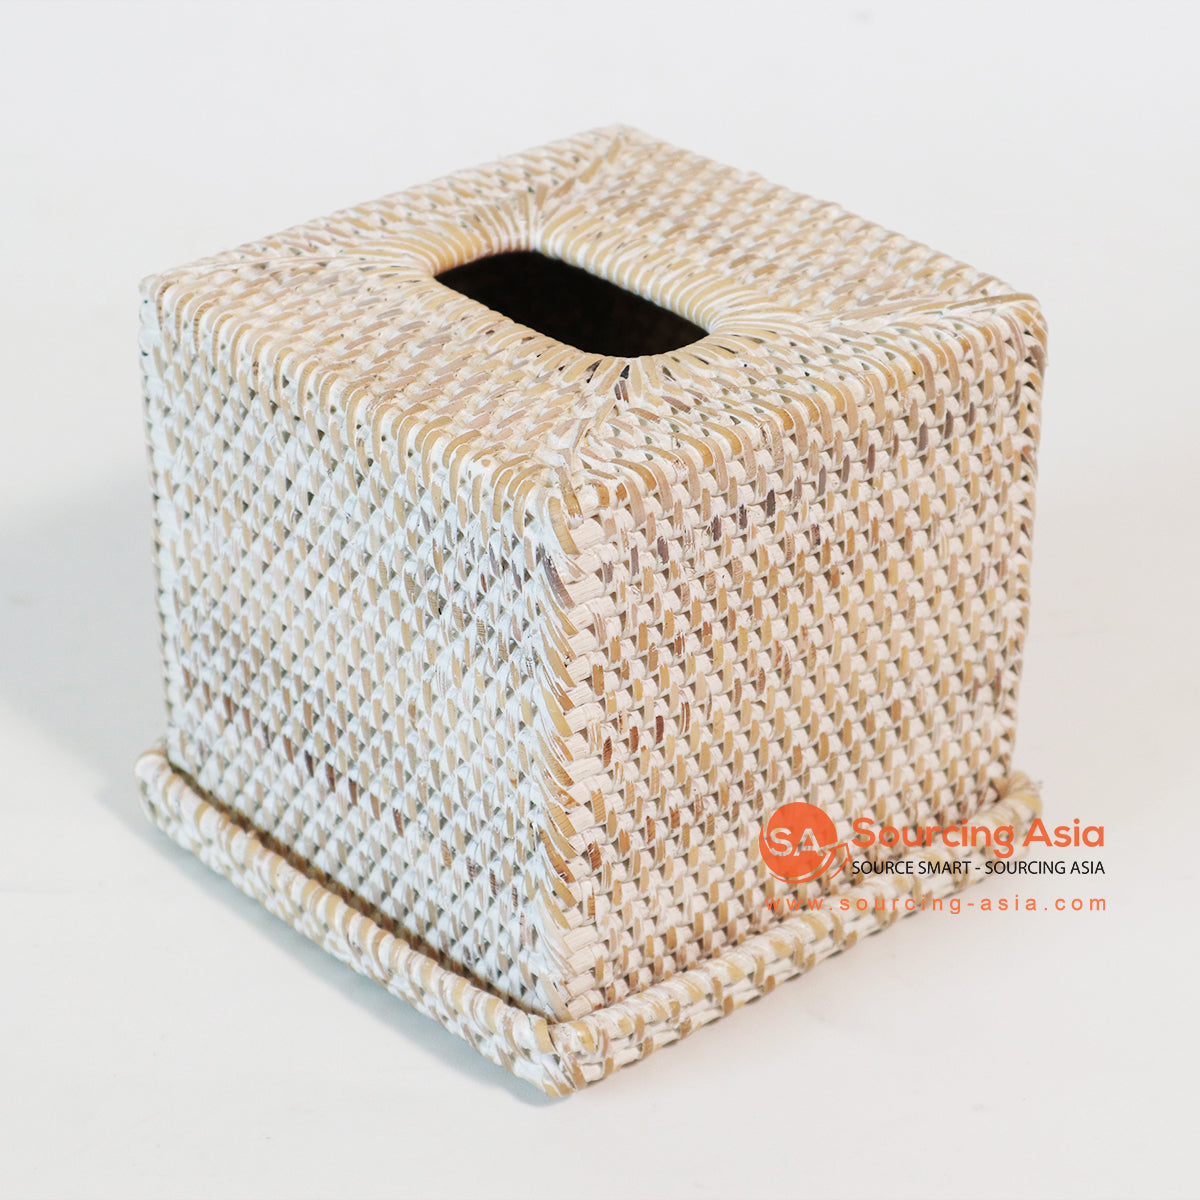 MTIC072-3 RATTAN TISSUE BOX COLOR WHITE WASH